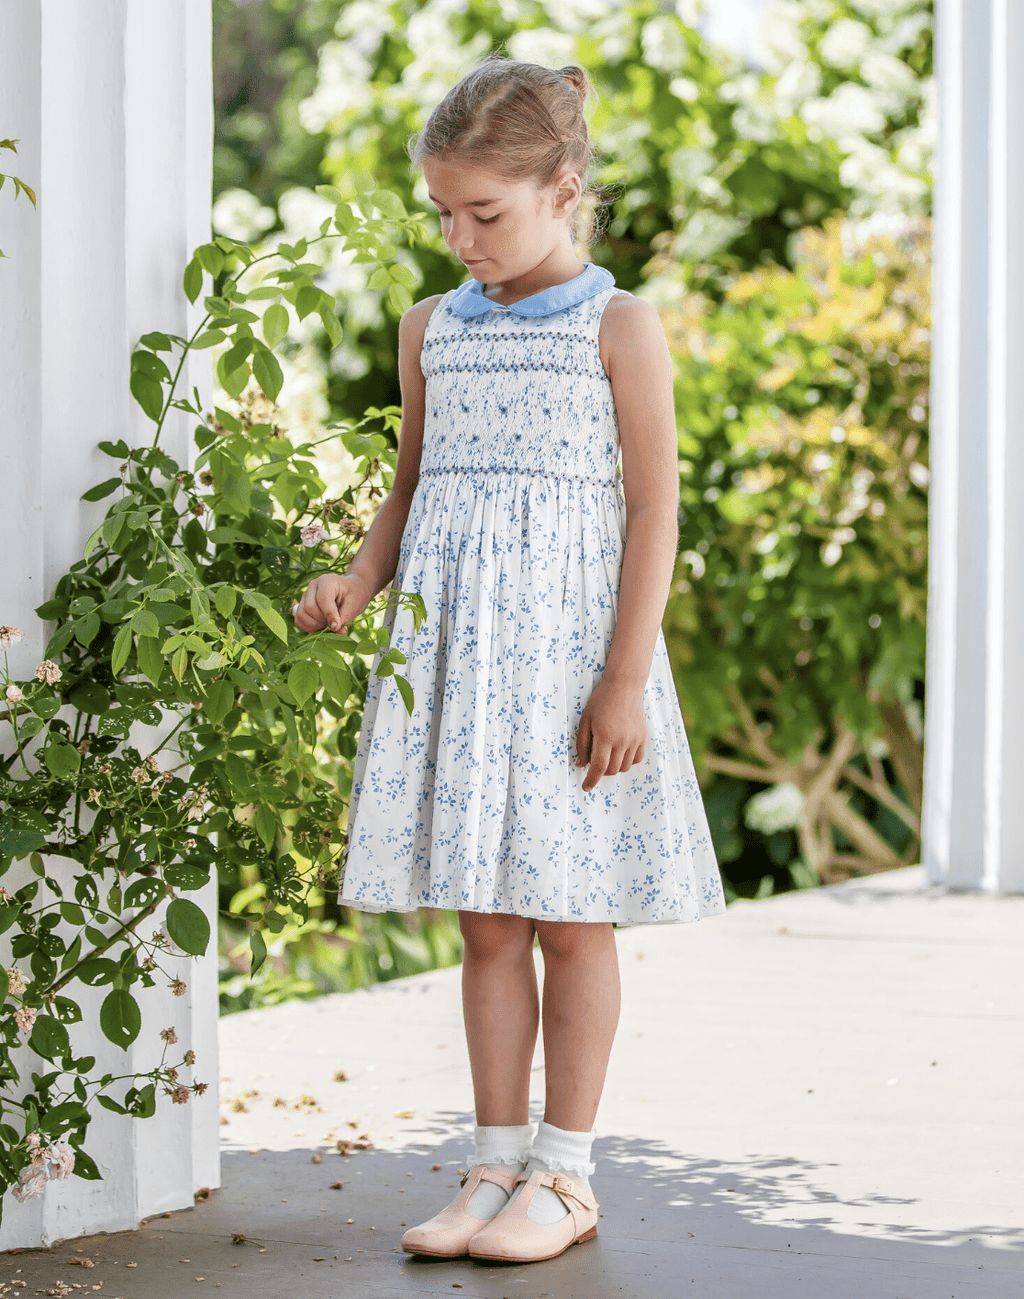 Antoinette Paris Flora Jardin Dress - Blue